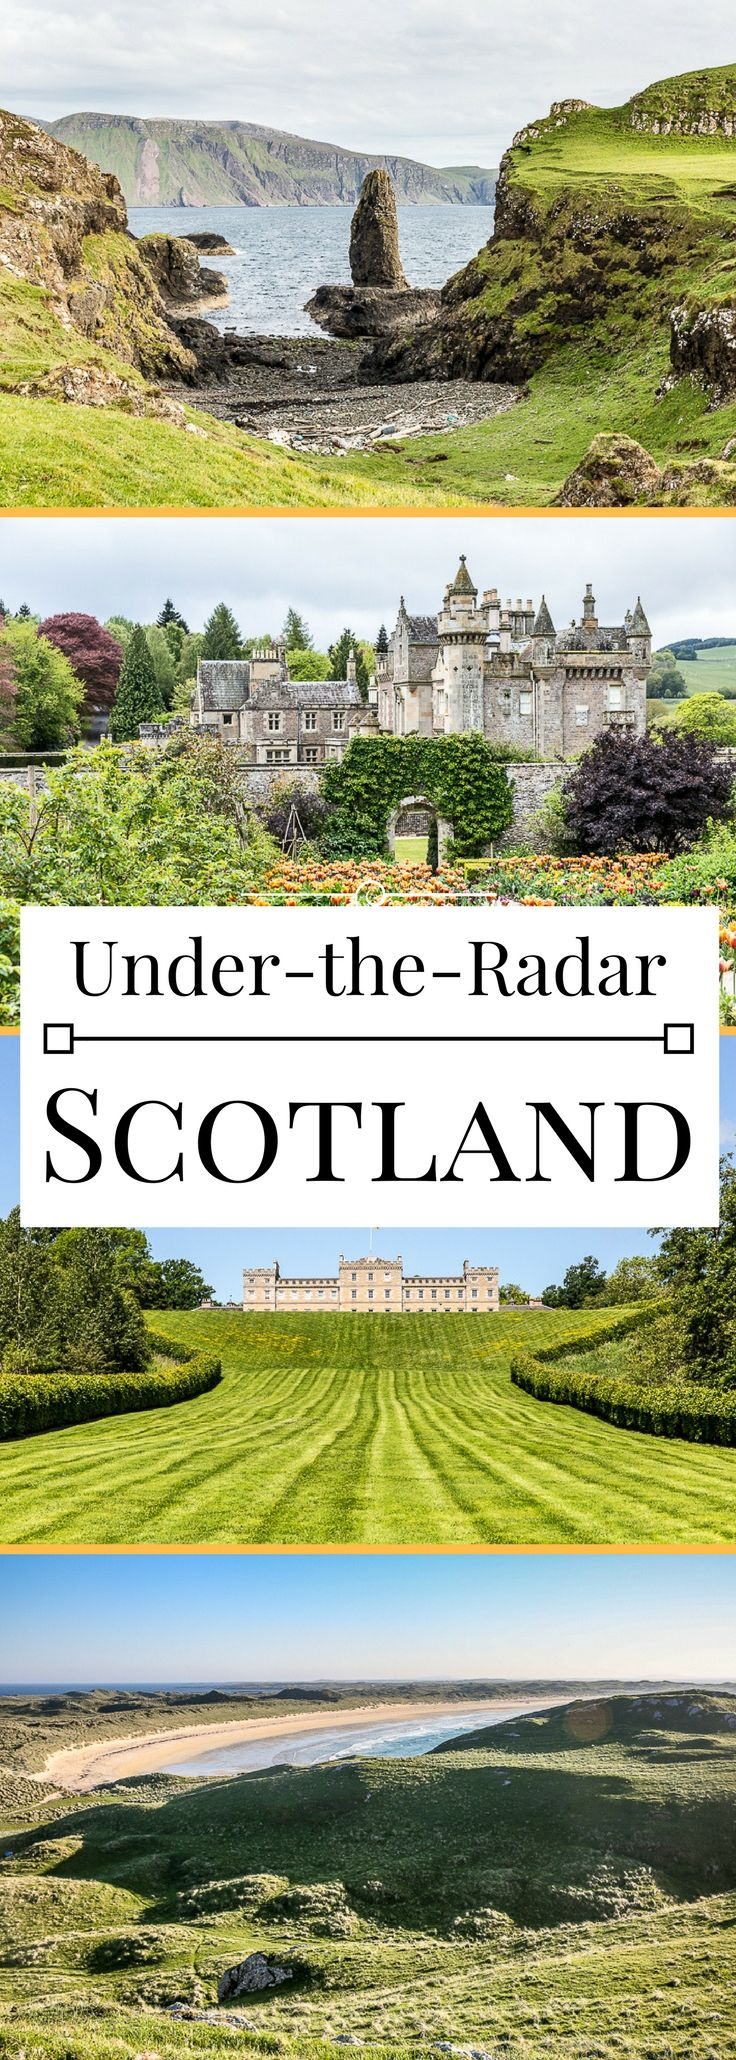 5 under-the-radar places to travel in Scotland, from the castles to the islands.